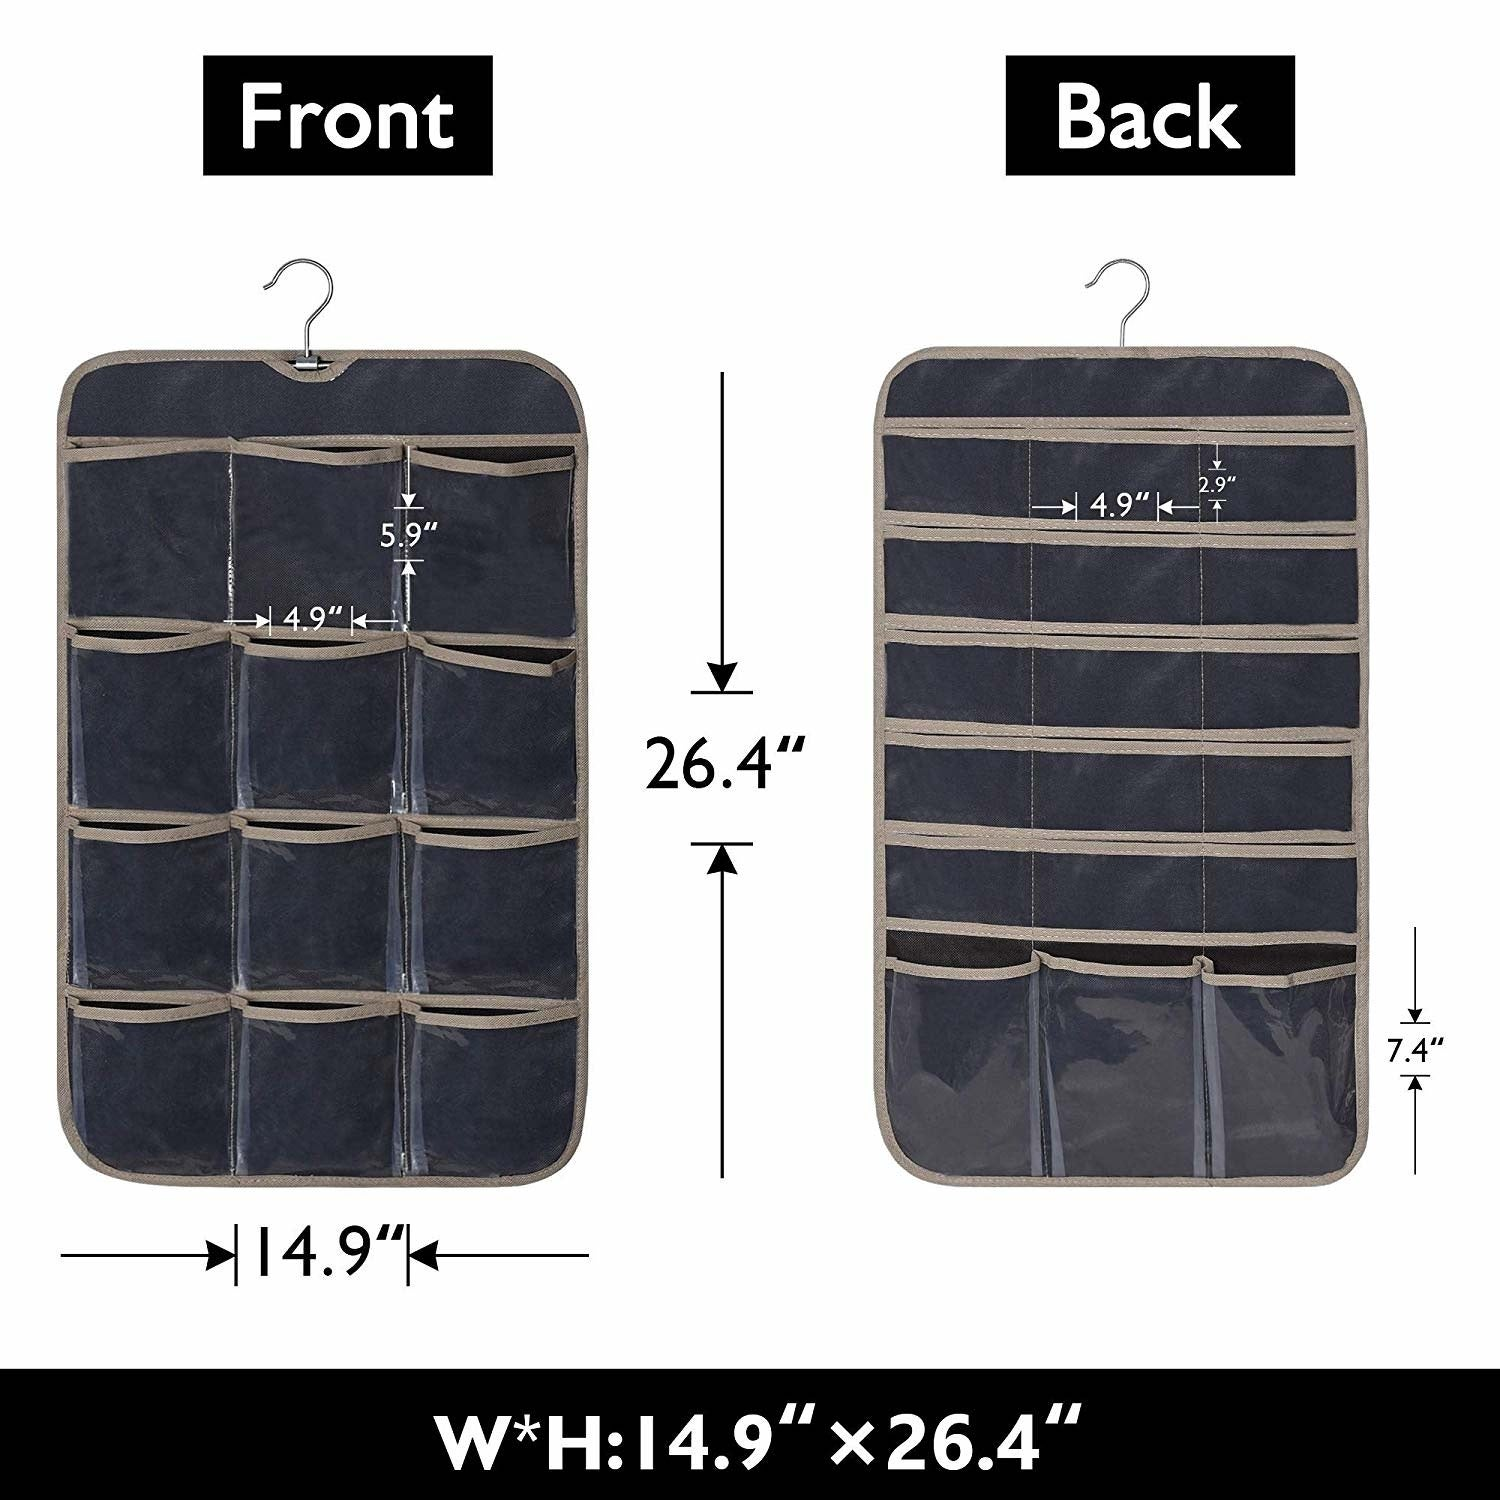 c79da3c5c138 GRANNY SAYS Hanging Jewelry Organizer Bag With Hanger, Dual-sided Accessory  Organizer, 30 Pockets, Brown, 26.4